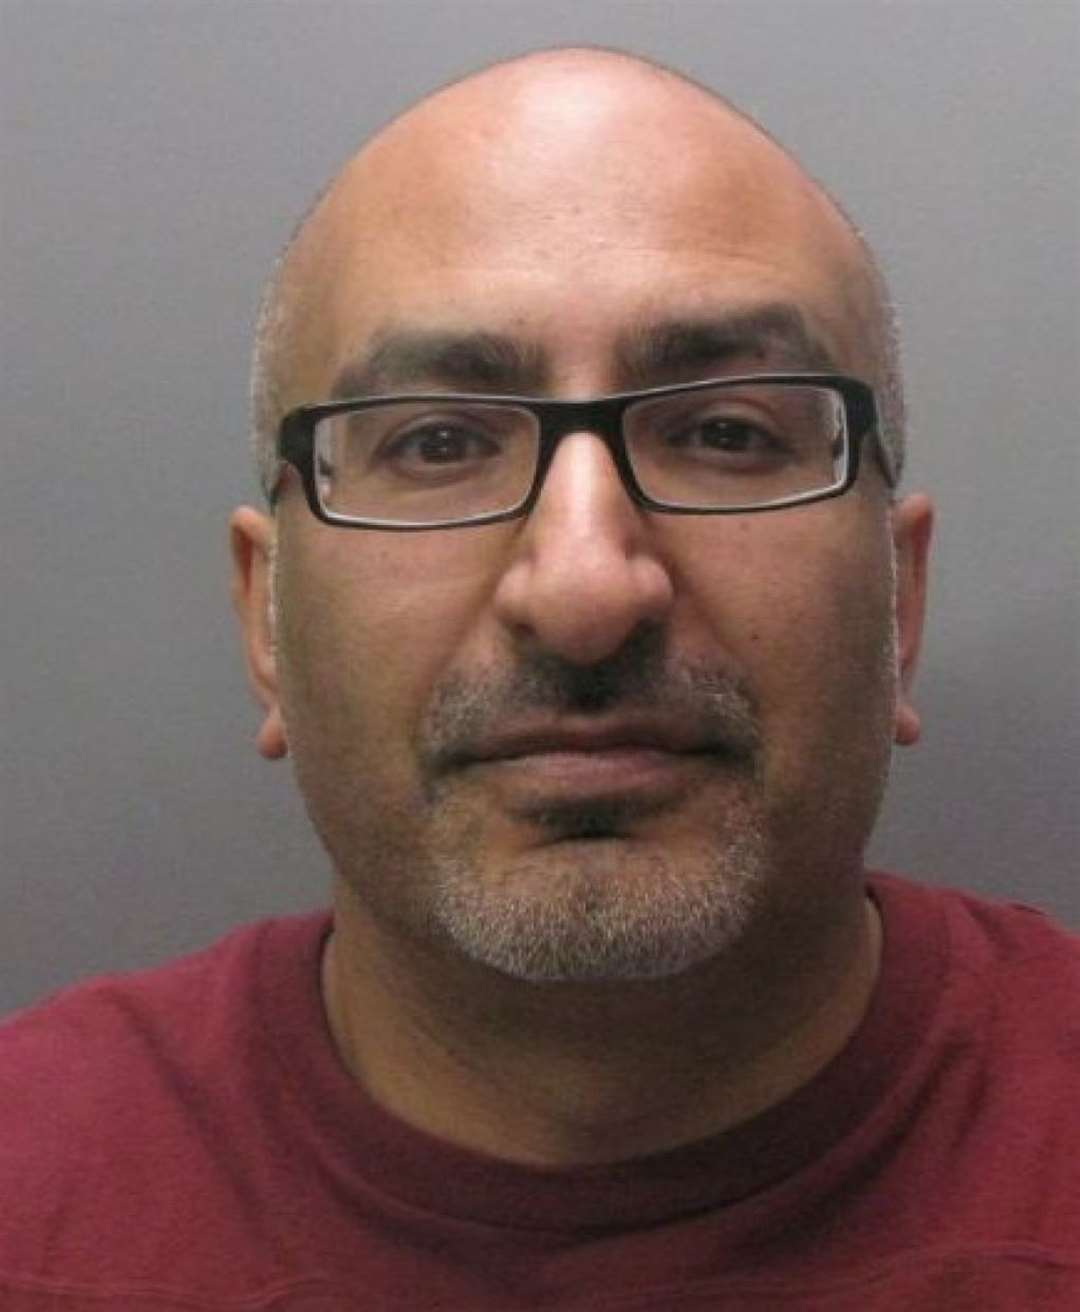 Cyrus Kazak, originally of Woodpecker Way, Waterbeach, was jailed for 12-and-a-half years in February 2014 after pleading guilty toconspiracy to supply cocaine, supplying cocaine, possession of ecstasy (MDMA) with intent to supply, and possession of ecstasy (39108203)